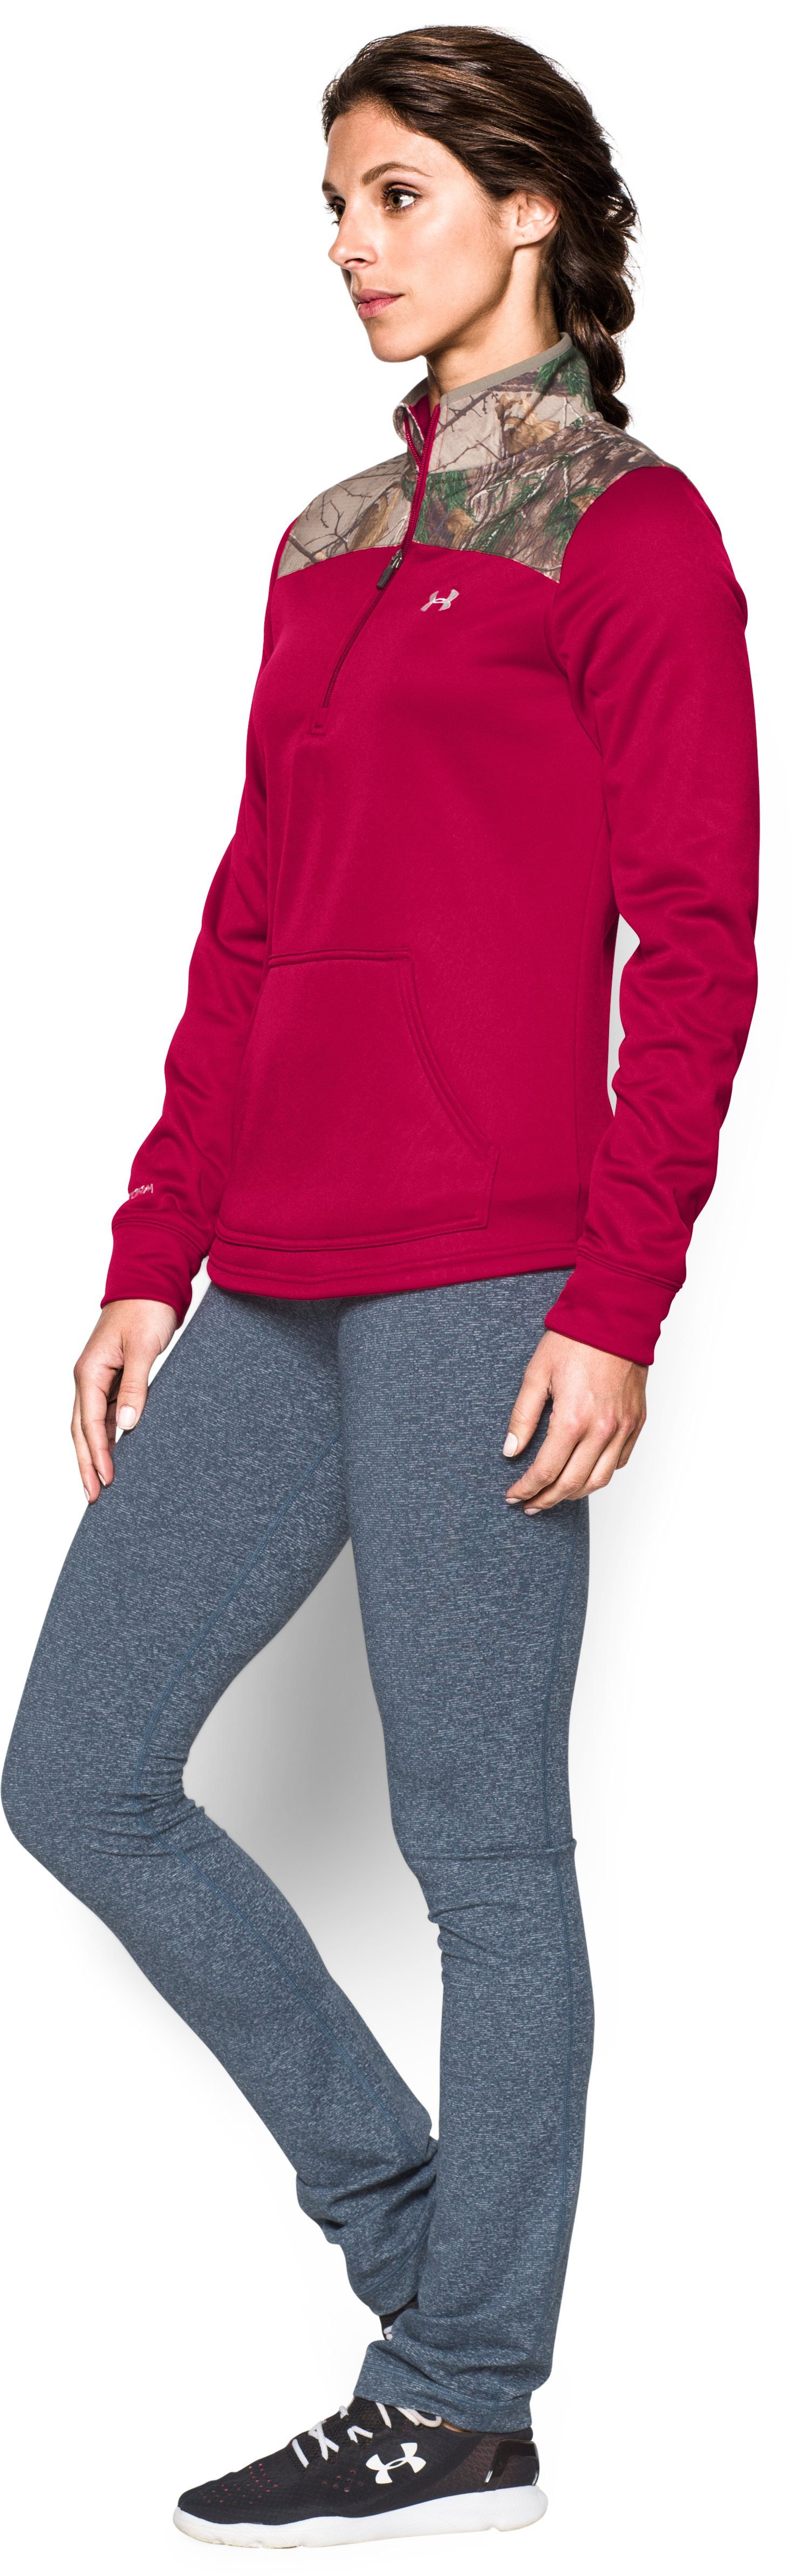 Women's  UA Caliber 1/2 Zip, Fury, undefined